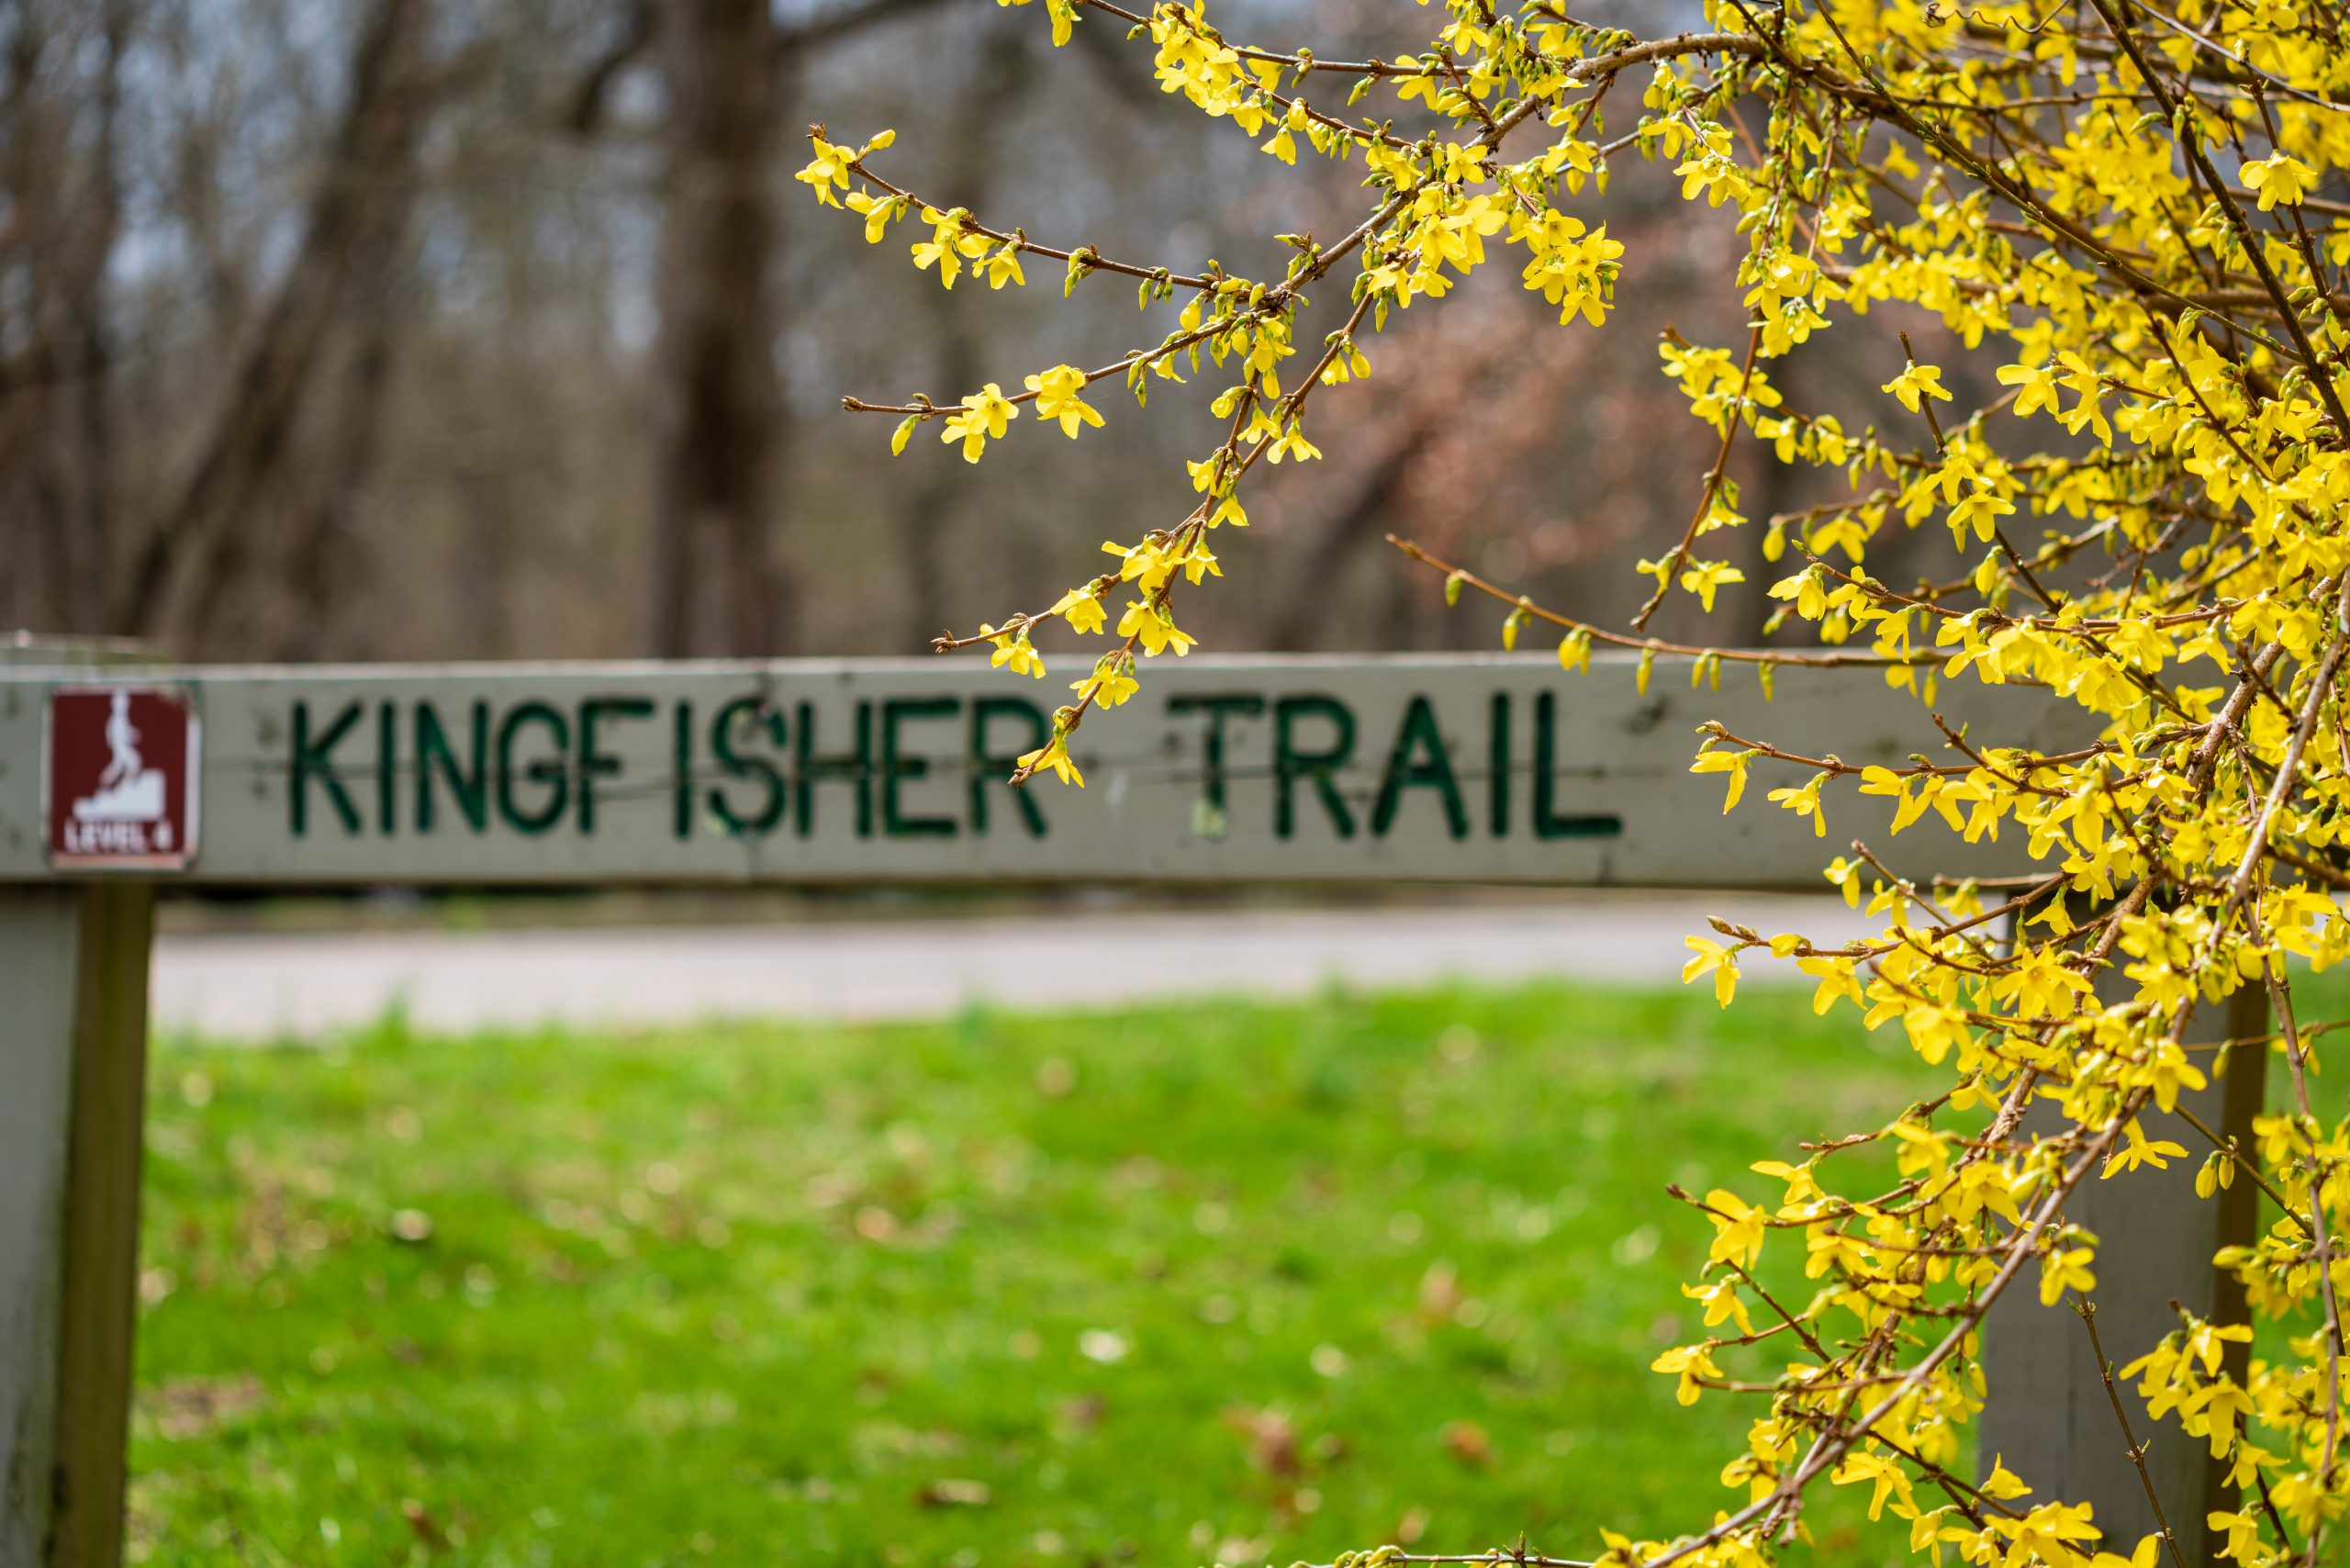 A trailhead sign marks the start of the Kingfisher Trail. A tree with yellow leaves is in front of the sign.